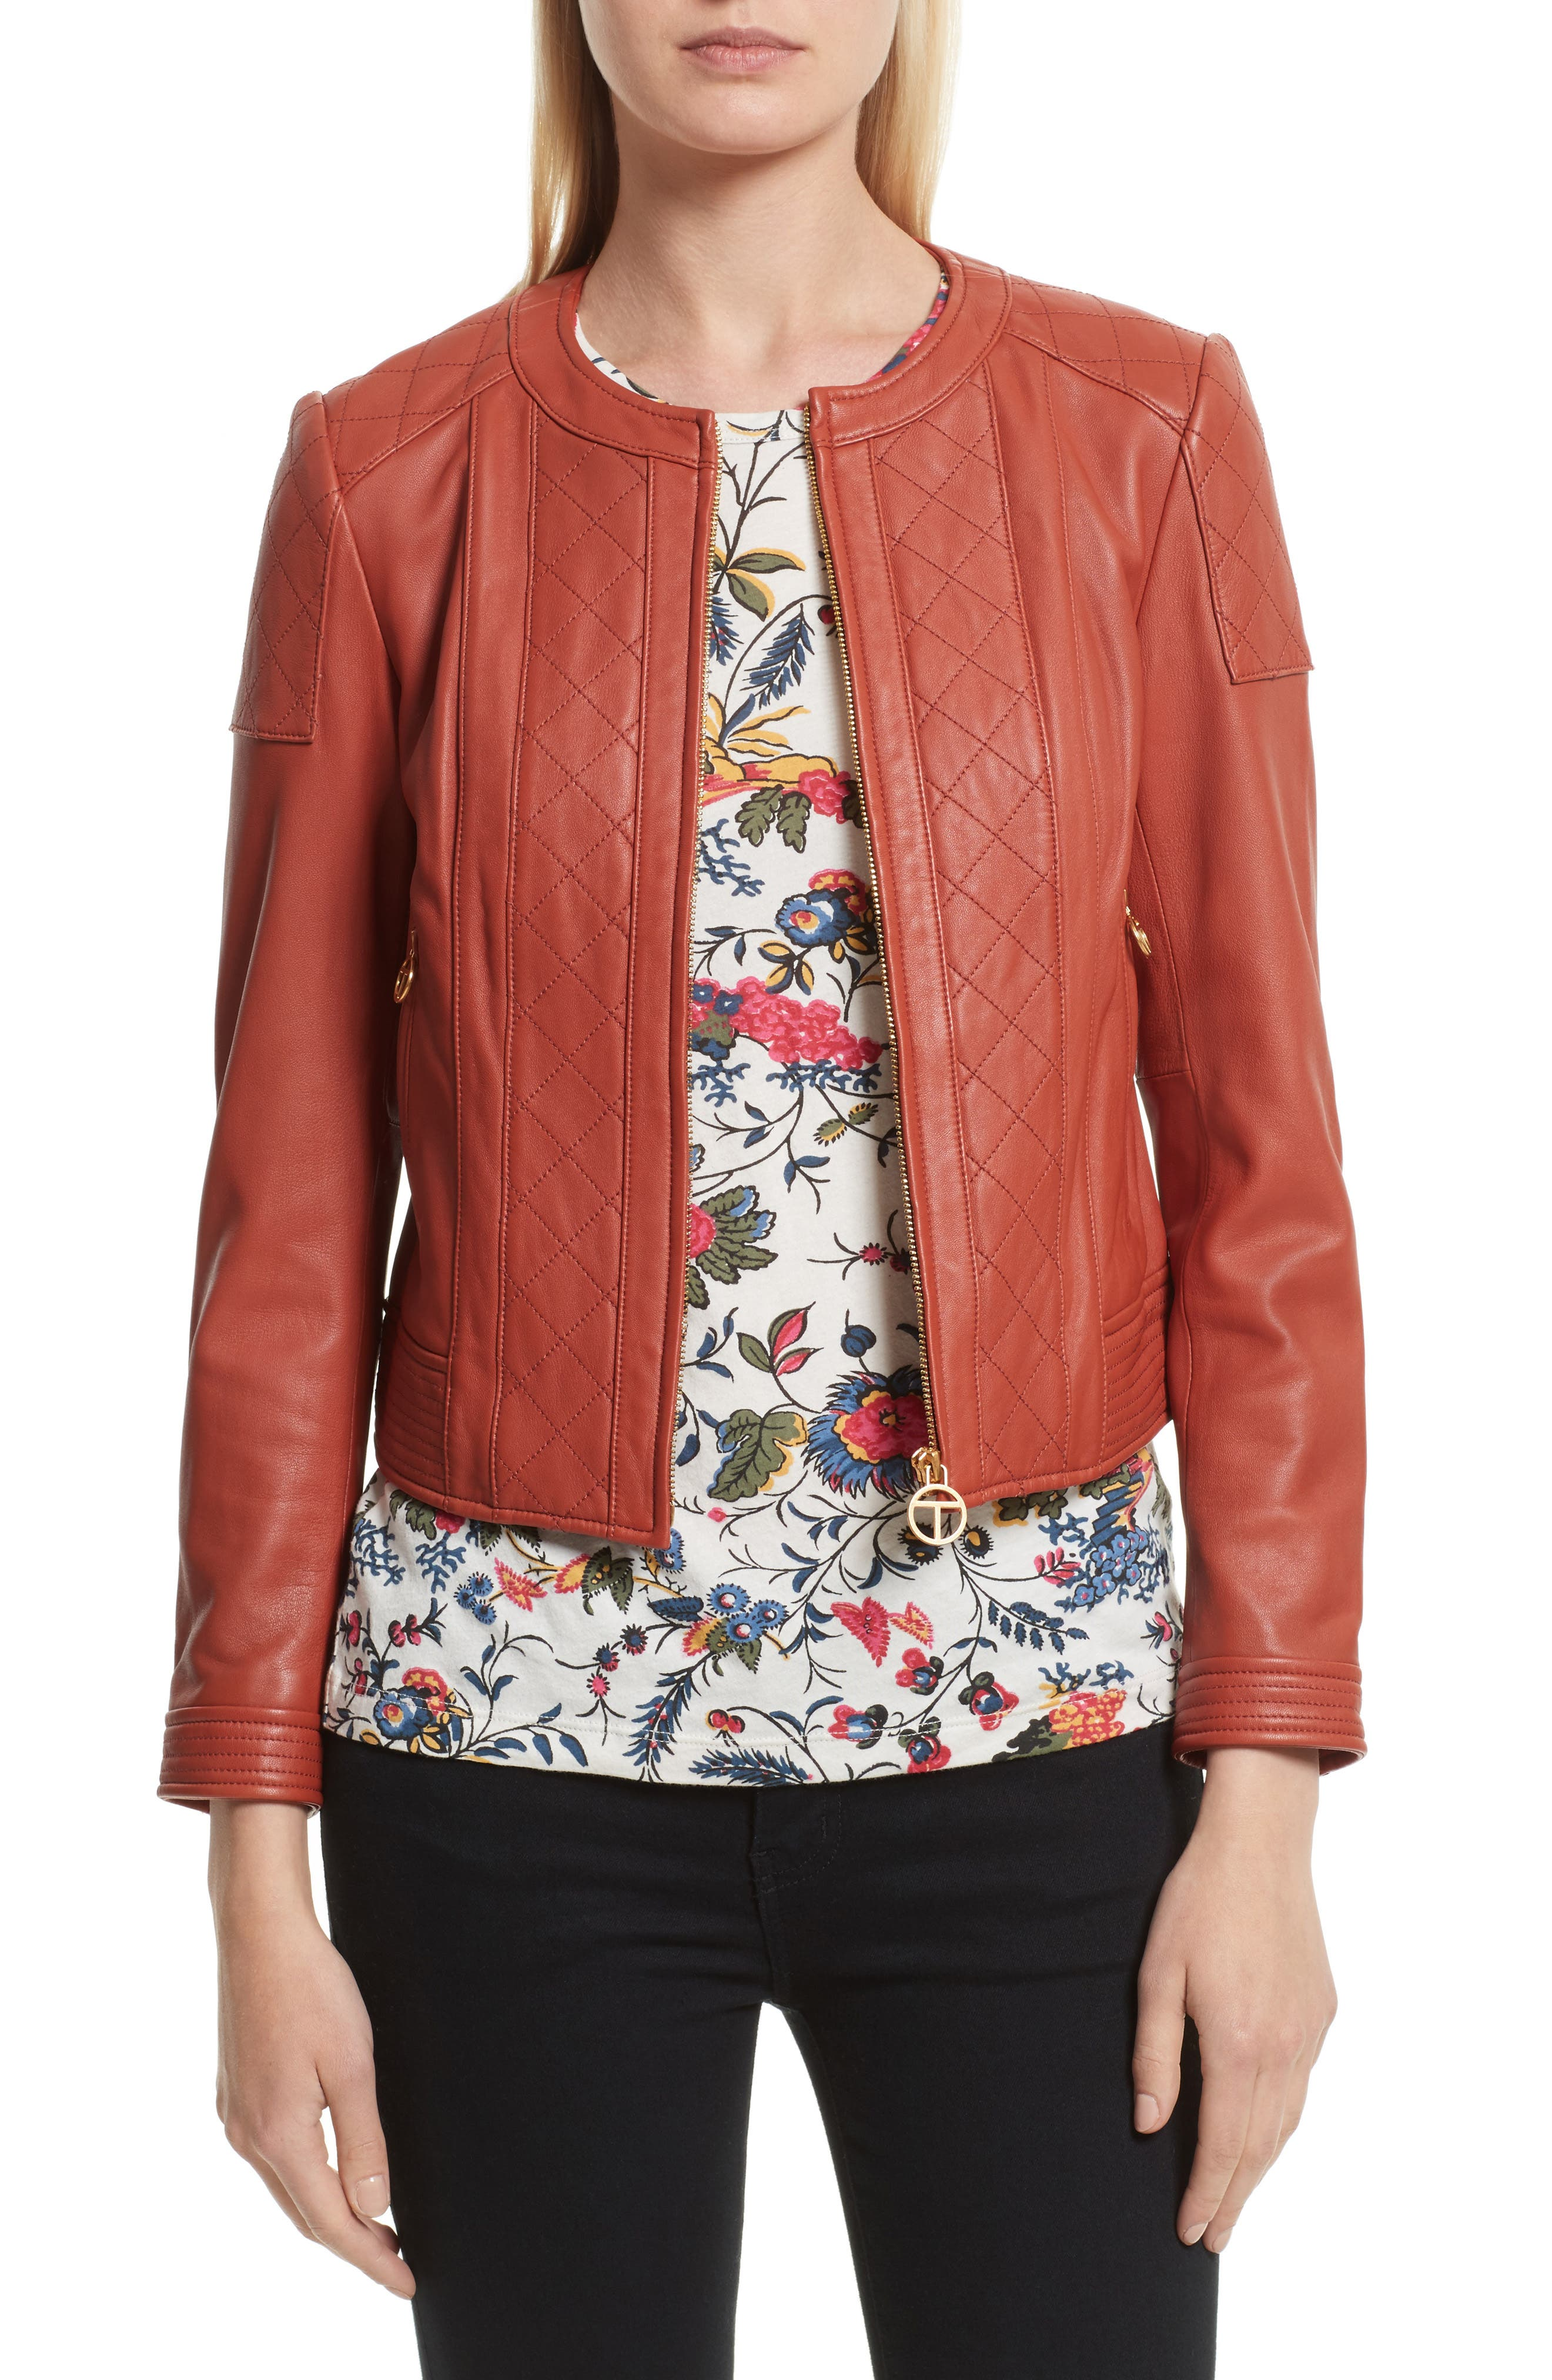 Tory Burch Ryder Leather Jacket